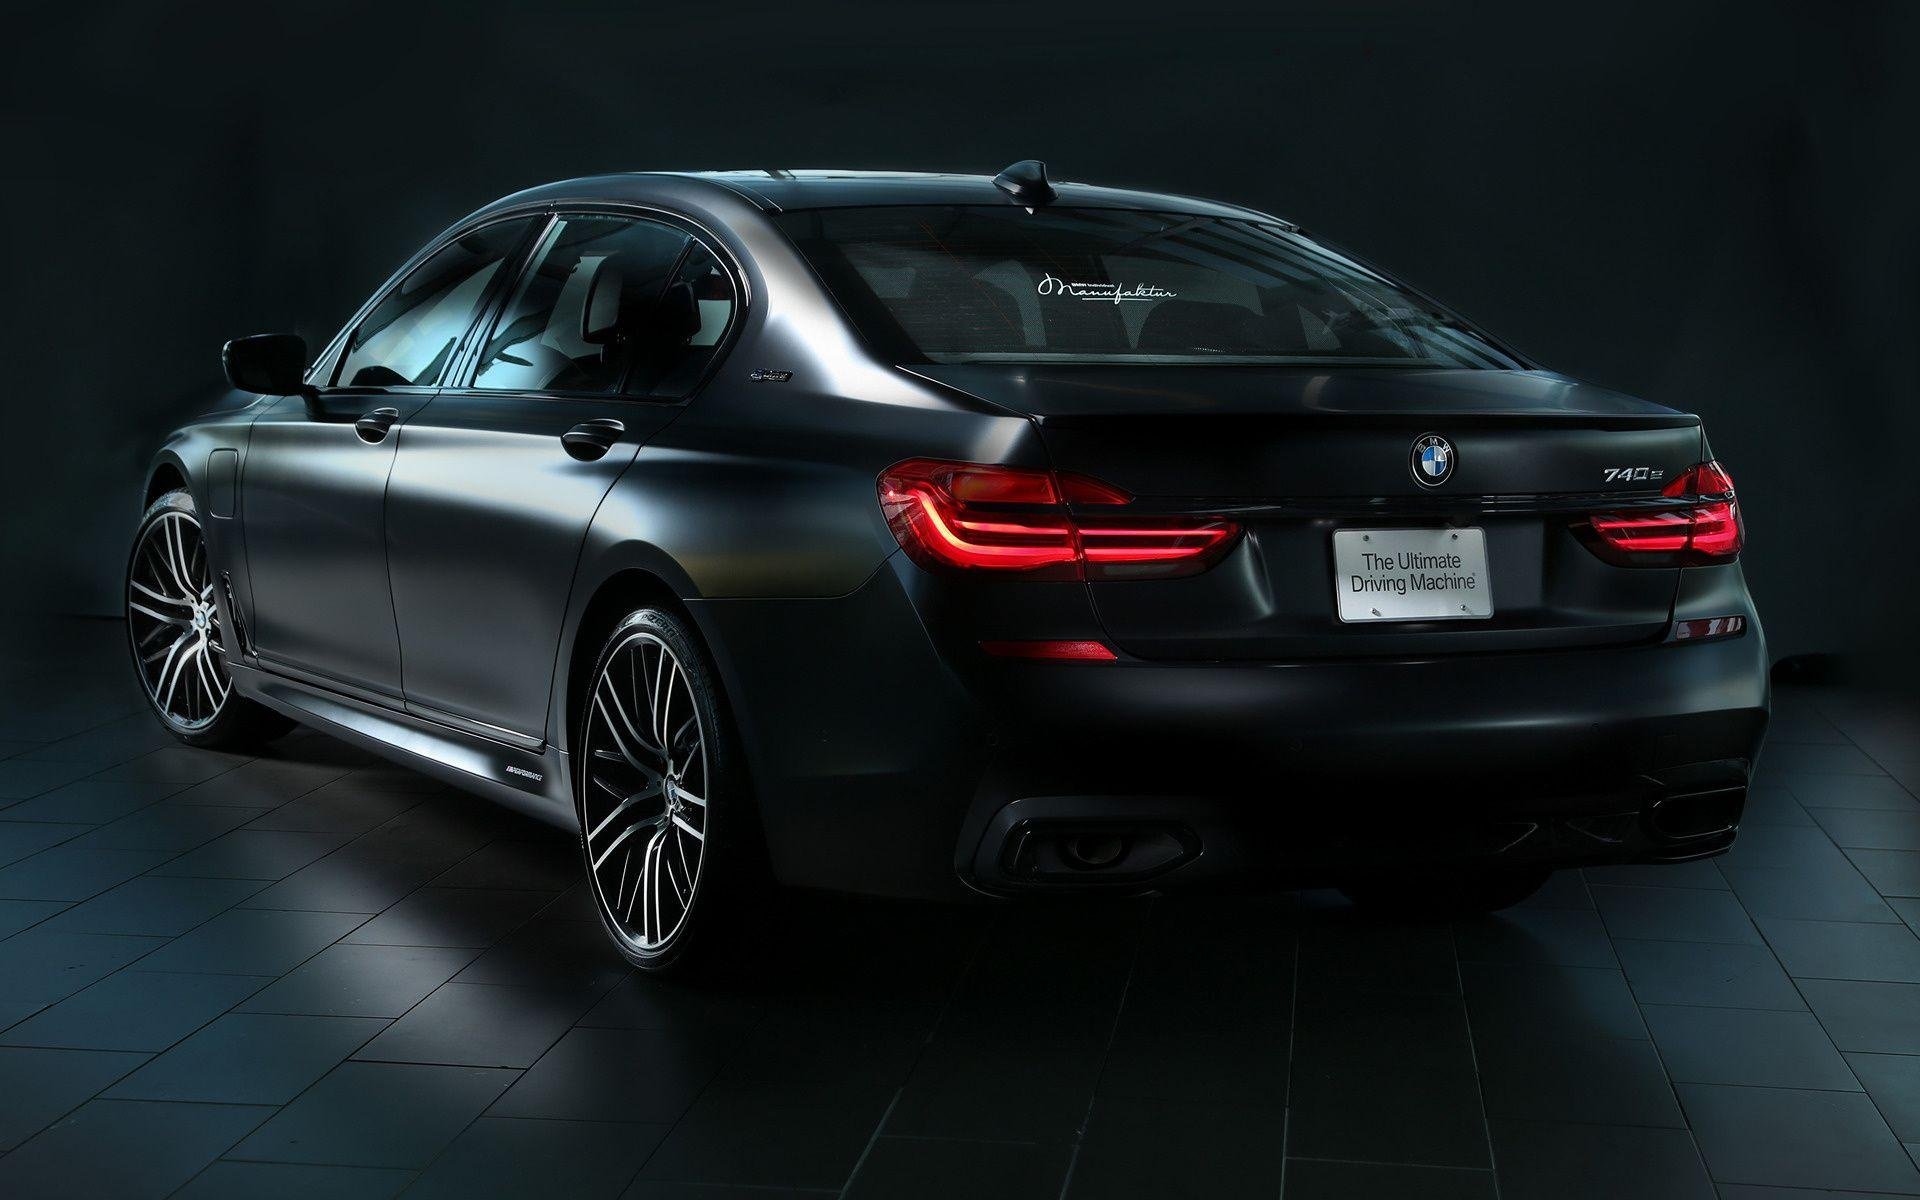 BMW 7 Series Wallpapers - Wallpaper Cave